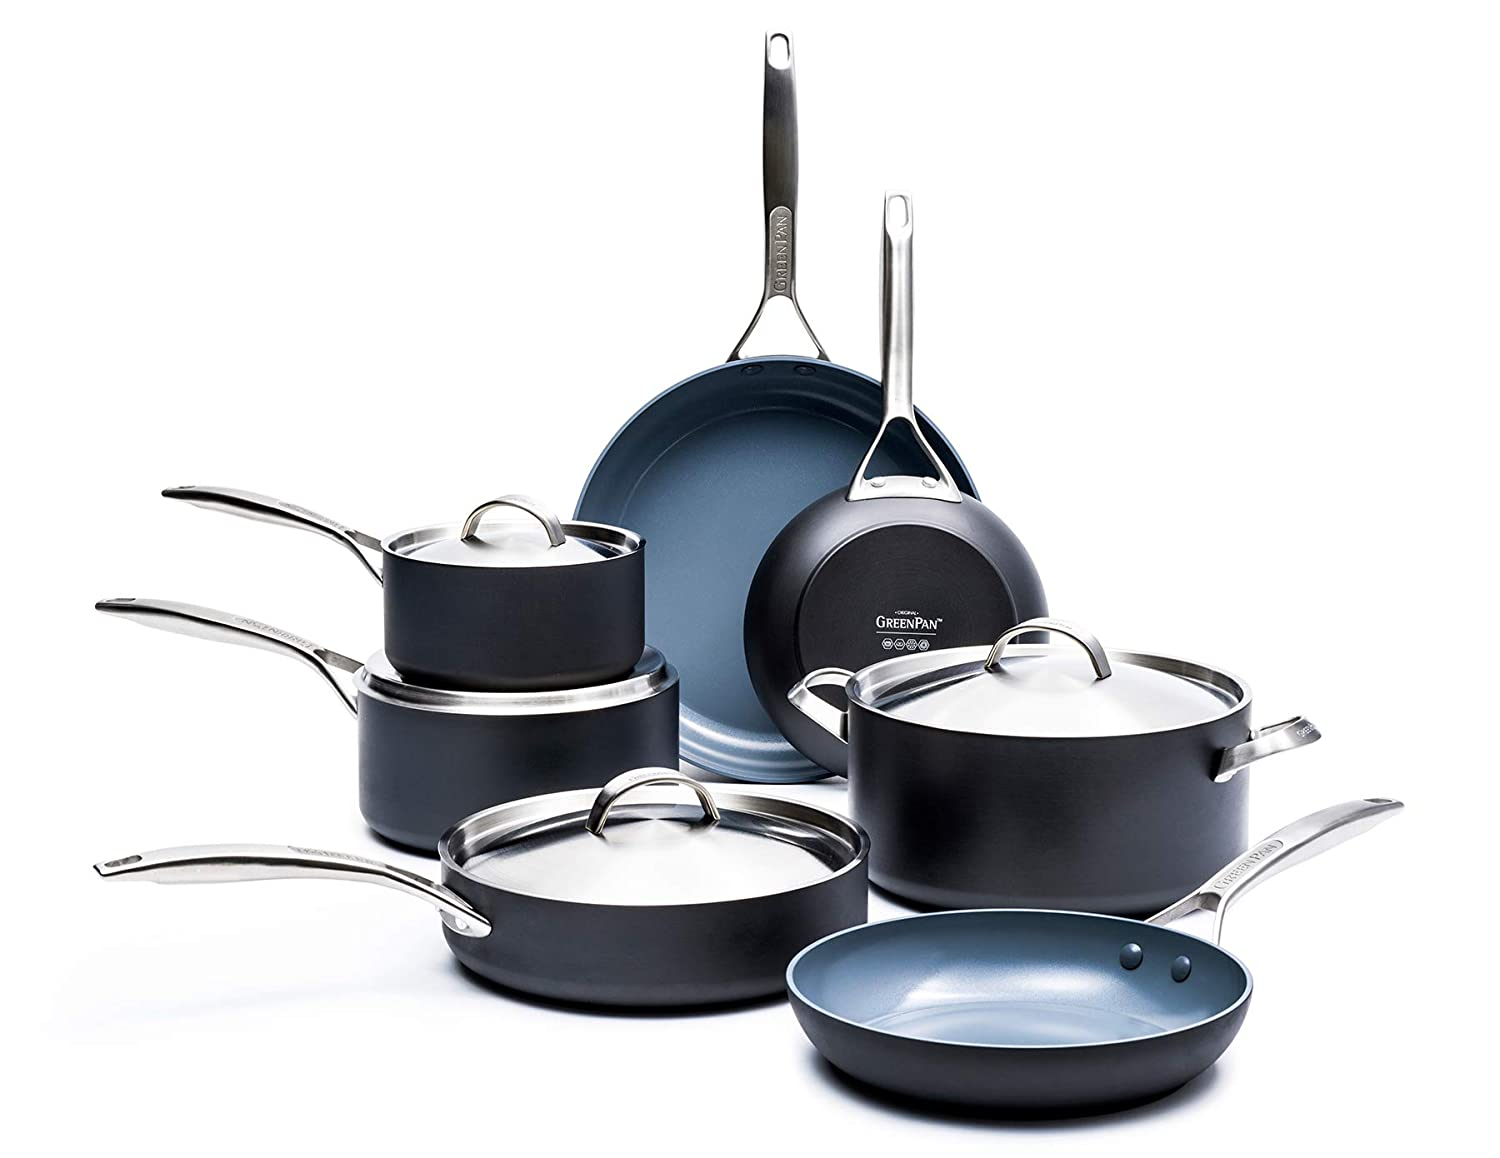 GreenPan Paris Pro 11pc best ceramic Cookware Set, Non-Stick